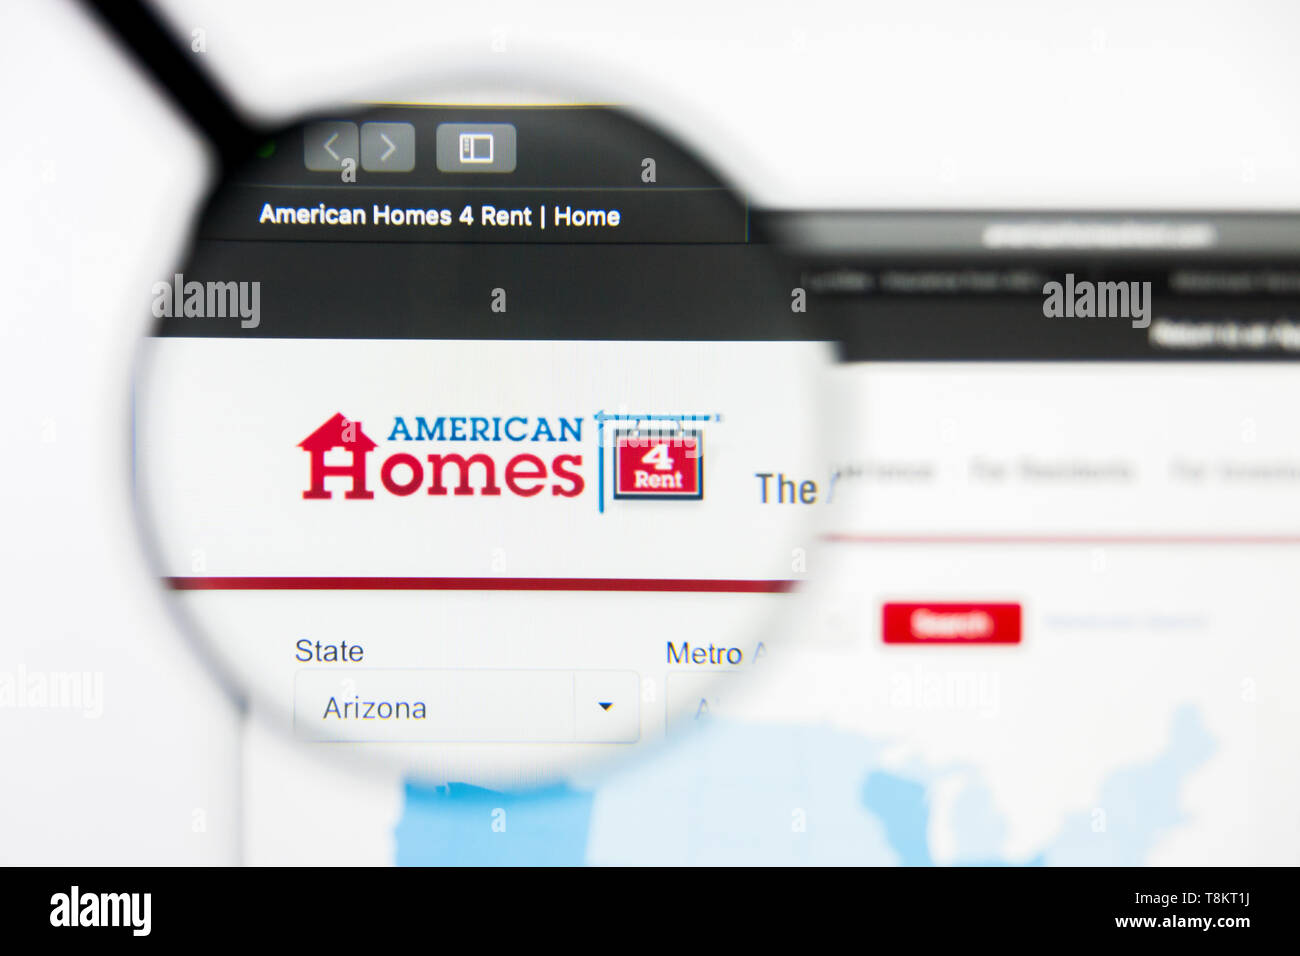 Homes To Rent Stock Photos Homes To Rent Stock Images Alamy